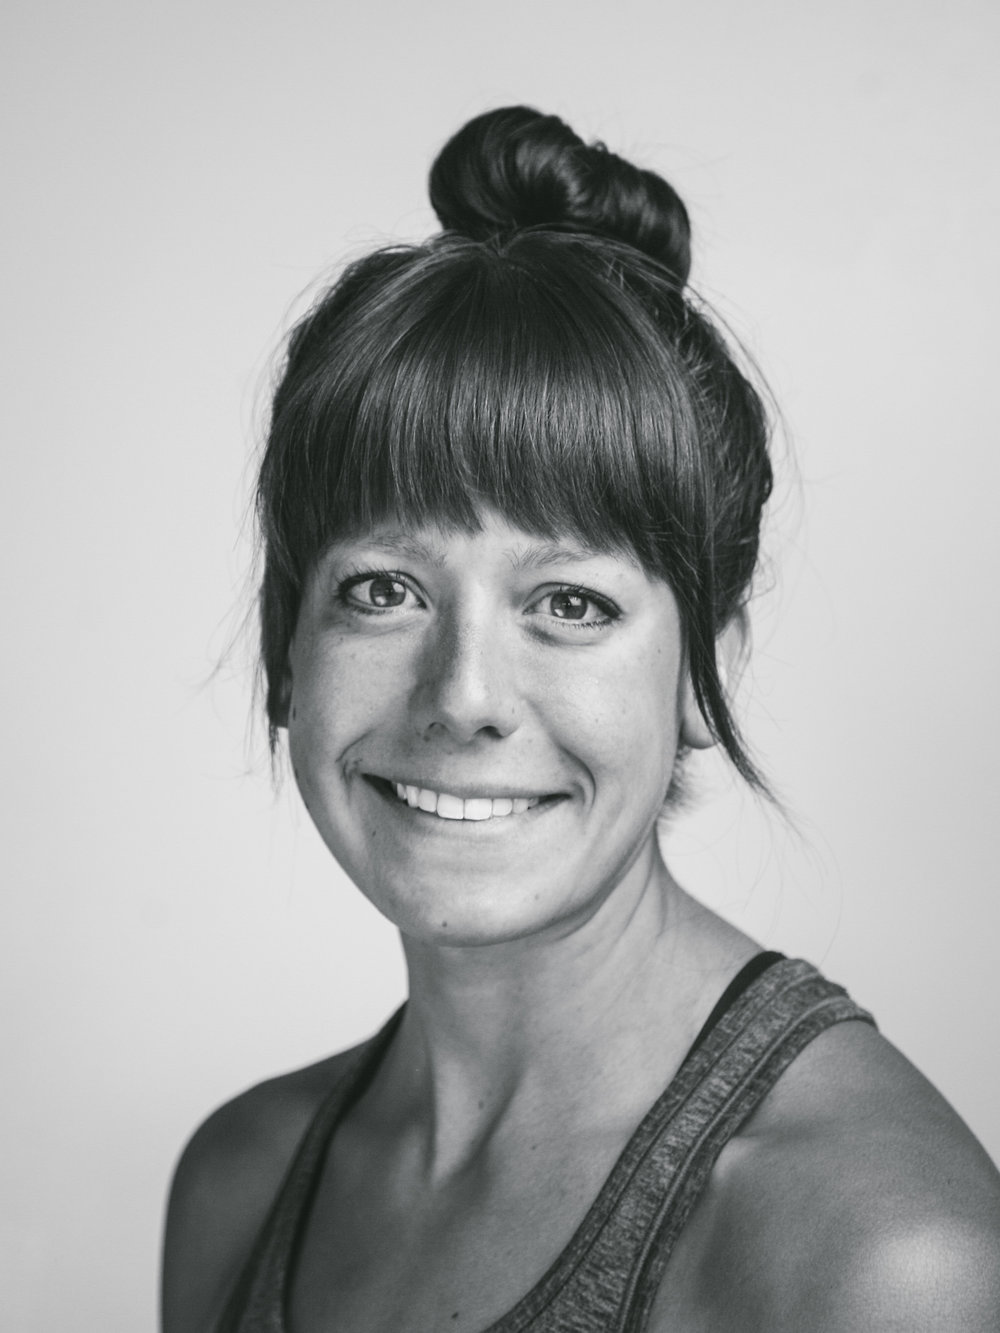 Dominique Maack - I teach: Seek Sweat & TRXMy philosophy in programming is an efficient total body workout that transitions quickly but focuses on mindful movement. While participating in one of my classes I want people to feel engaged and motivated with the group to make those burning reps just a little easier. Words I Live By:Move with purposeBeats I Move To:I use a wide range of genres from pop, hip-hop, house, indie, and ambient beats. But is always contextual with what you're doing with your body.What I Live For:Novel experiences (travel, food, adventure) built around a daily exercise routine.